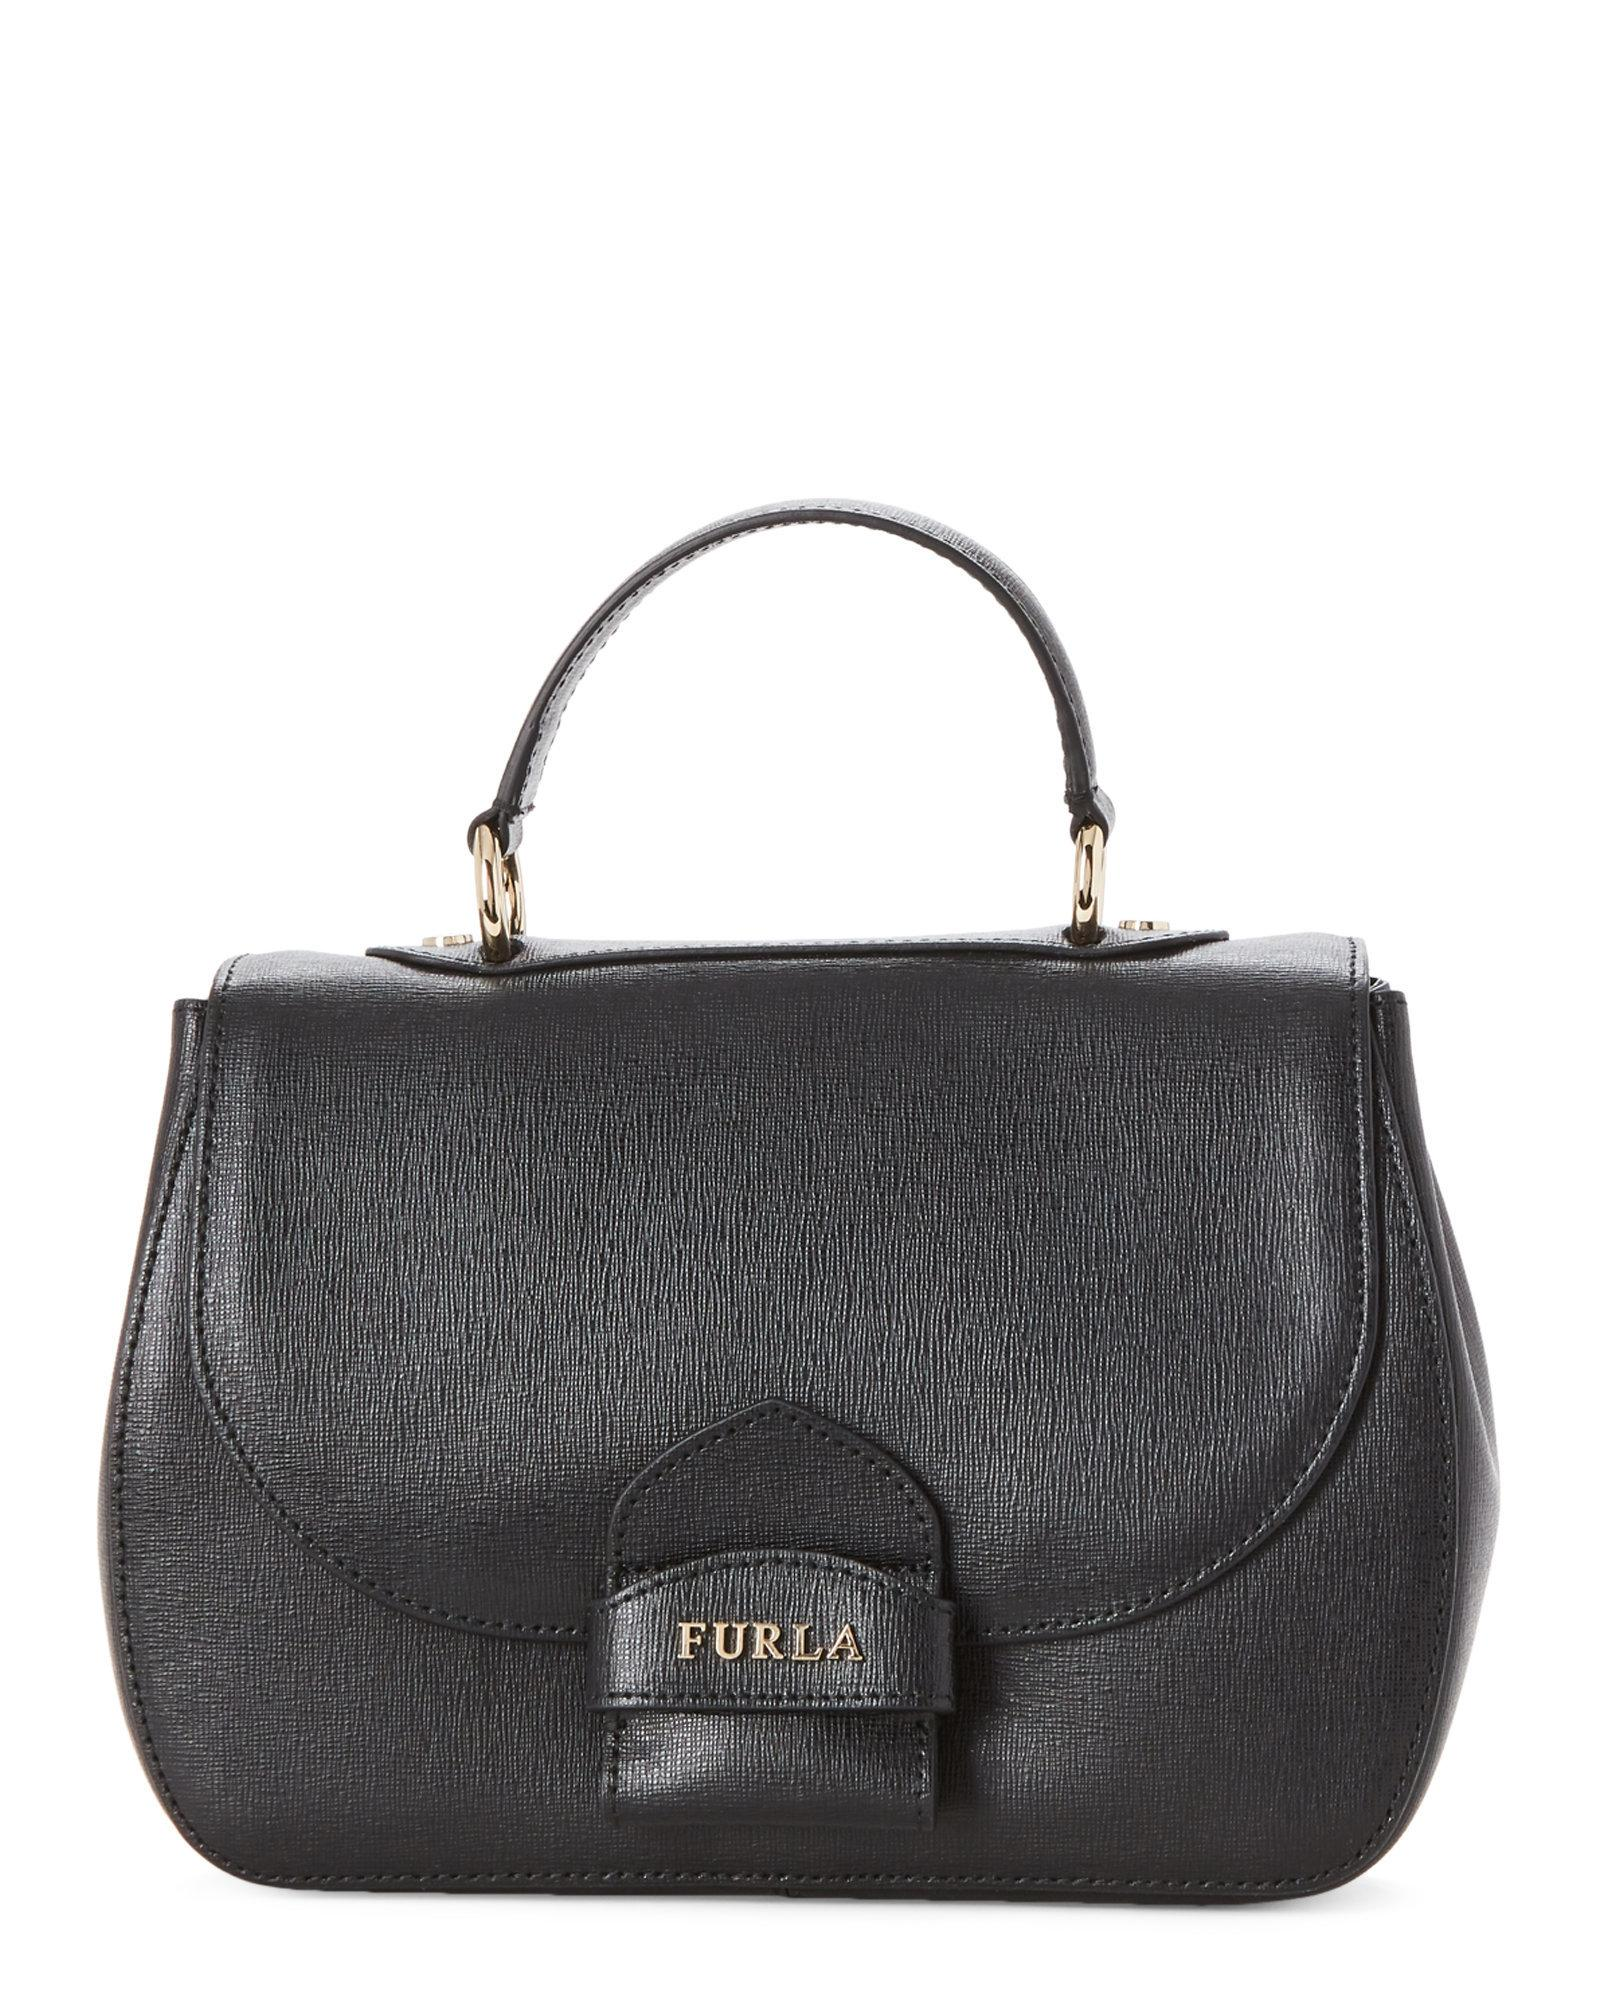 f2c2df0285 Furla Onyx Leather Coral Top Handle Bag in Black - Lyst